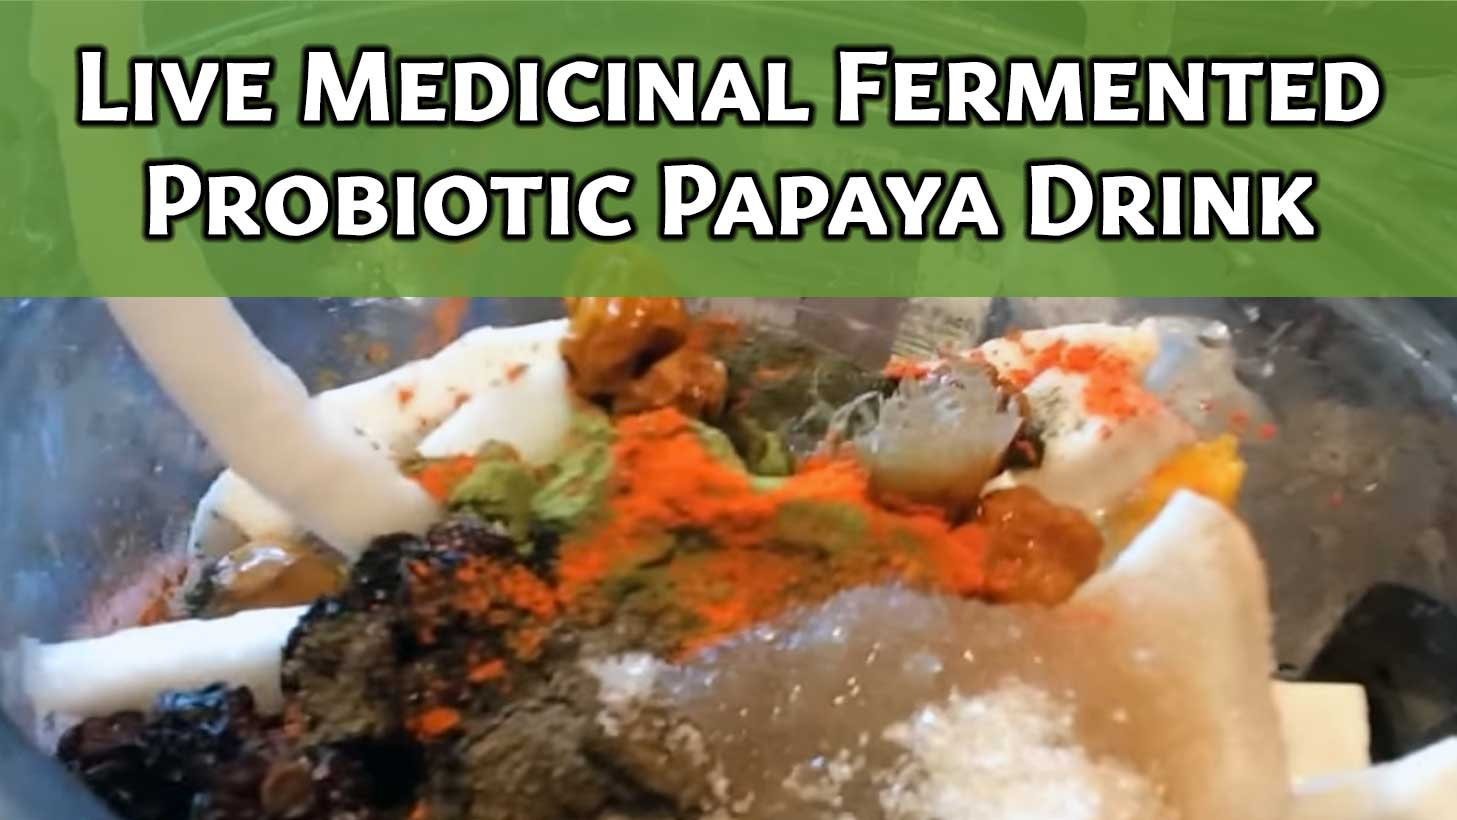 Live Medicinal Fermented Probiotic Papaya Drink